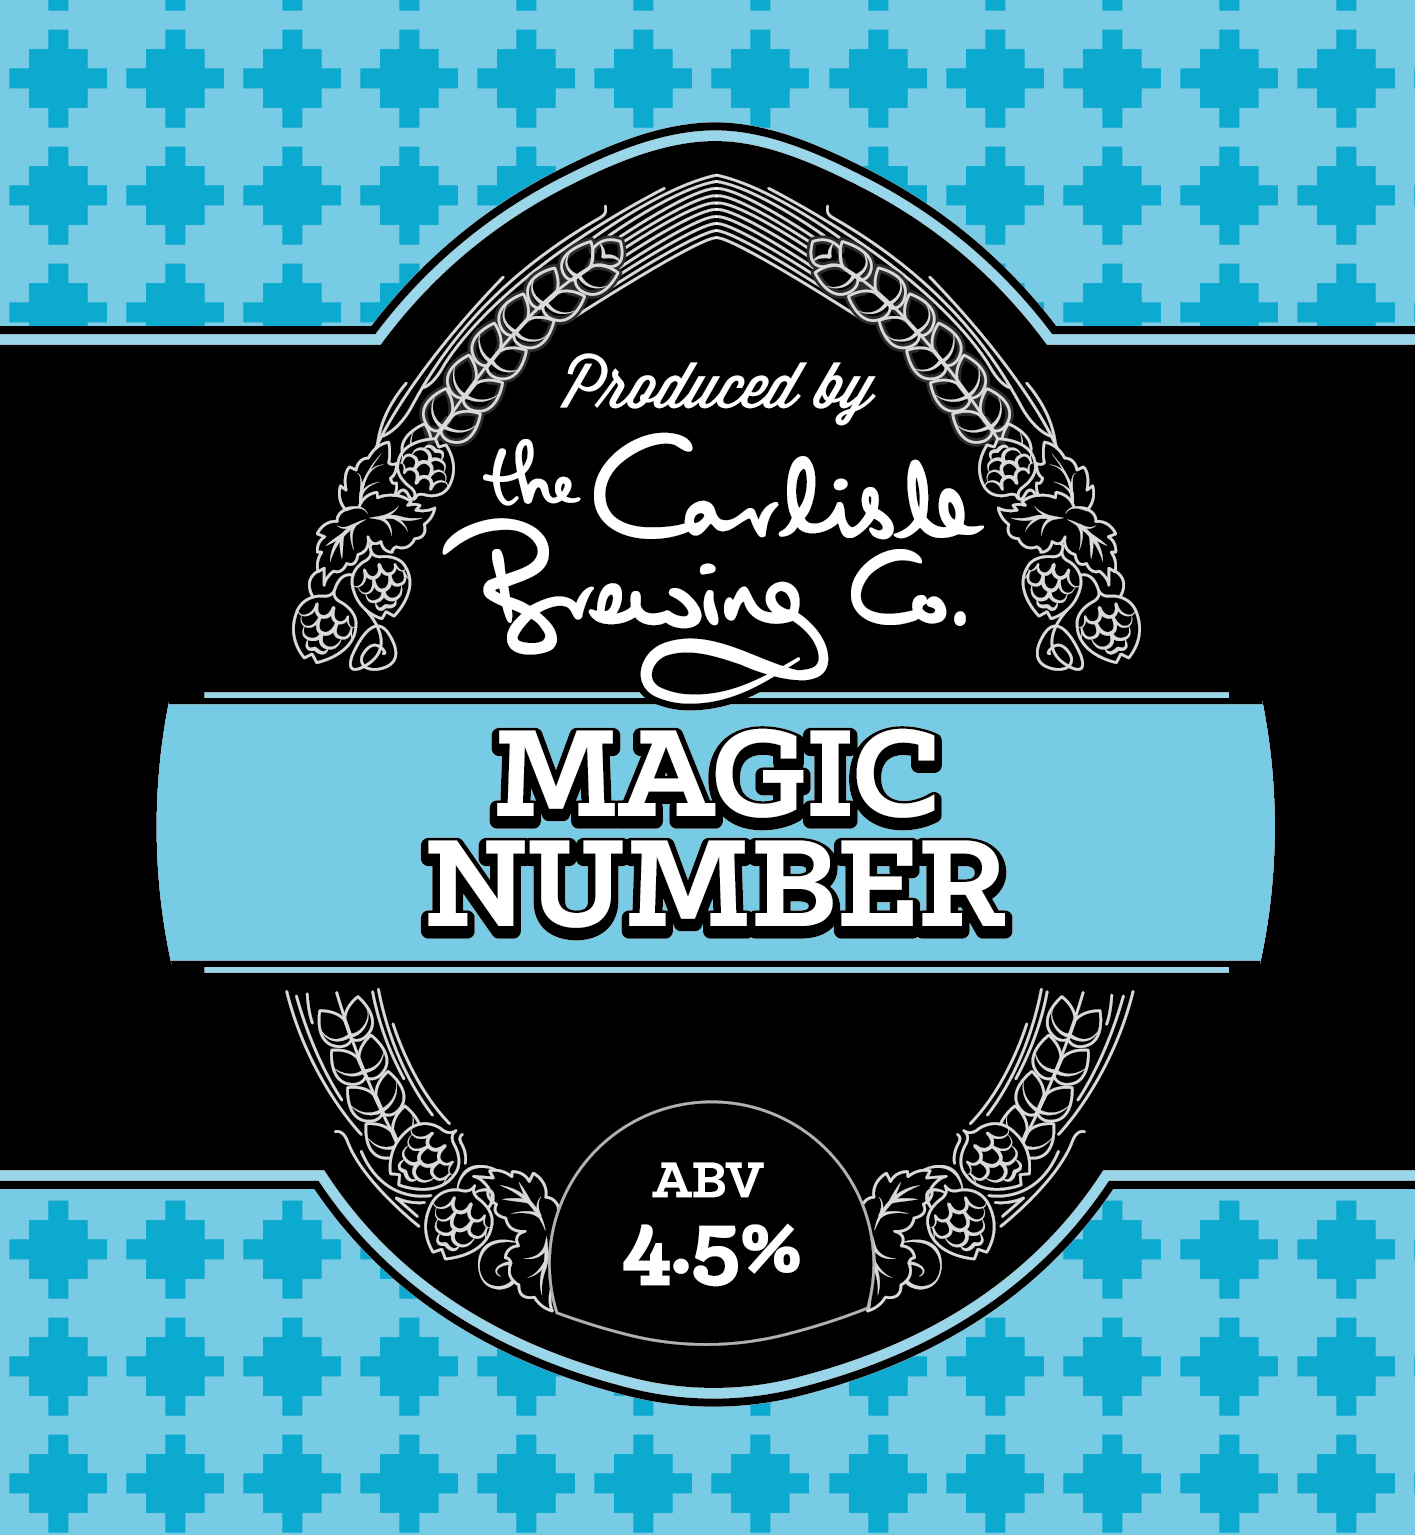 A premium bitter with caramel and toffee flavours.   Alain says his Magic Number is 4.5. From all the beers he has drunk and enjoyed over the years, his favourites all seem to have an ABV of 4.5%. This Magic Number is based on traditional English XBs. This is a premium bitter, soft and smooth with indulgent caramel and toffee flavours and Iightly bittered to give a refreshing malty beer.